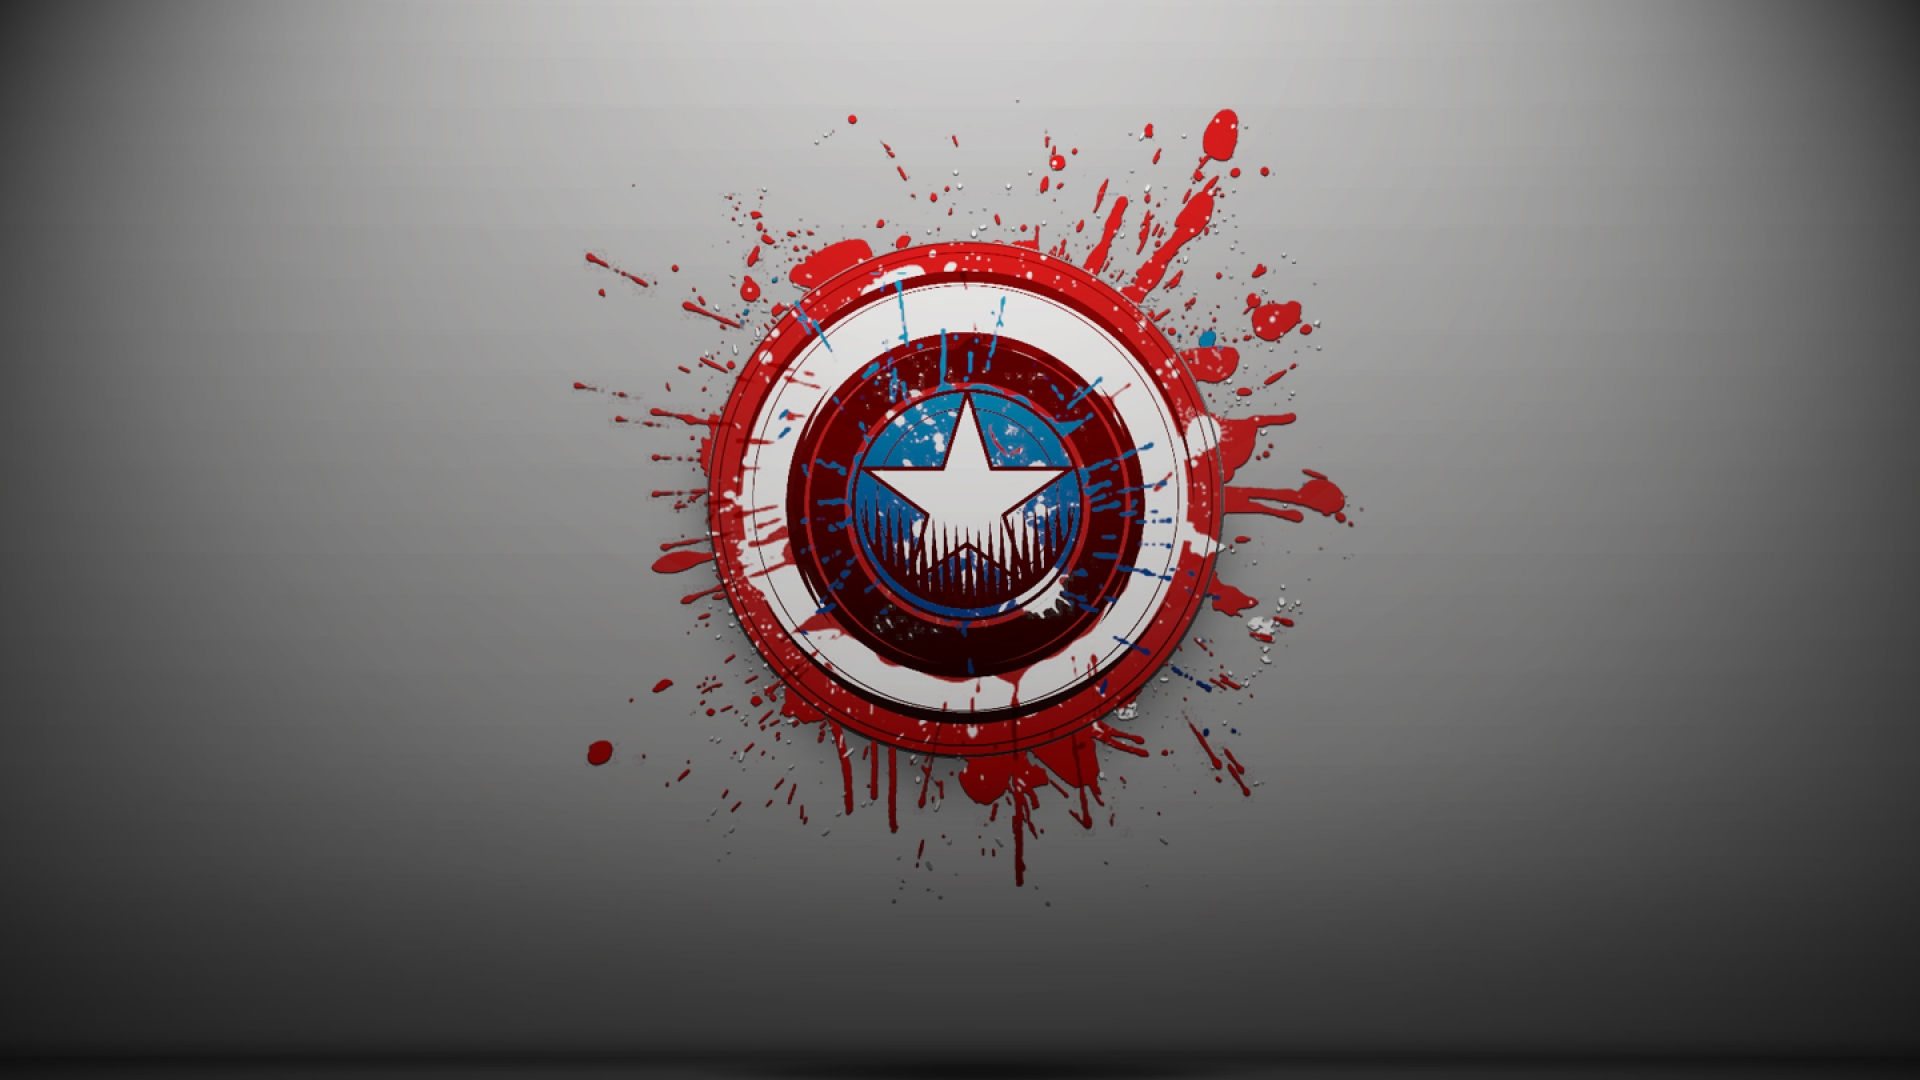 Download captain america logo wallpaper HD wallpaper 1920x1080